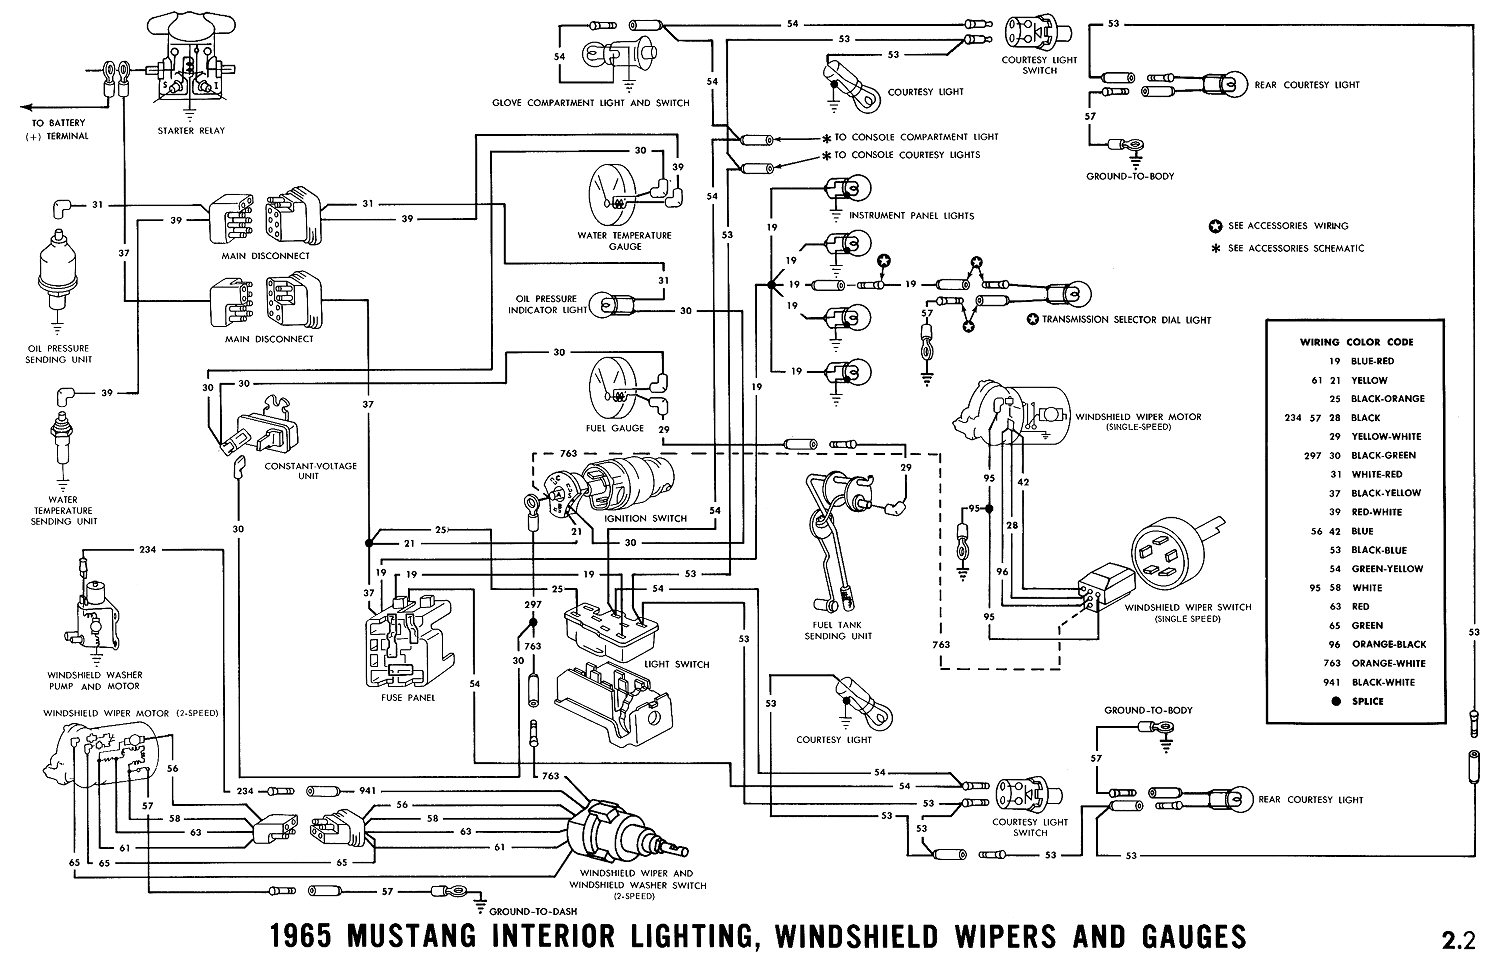 Magnetek 6620 Wiring Diagram Library Power Converter 3200 1965 Mustang Diagrams Average Joe Restoration Rh Averagejoerestoration Com Ford Alternator